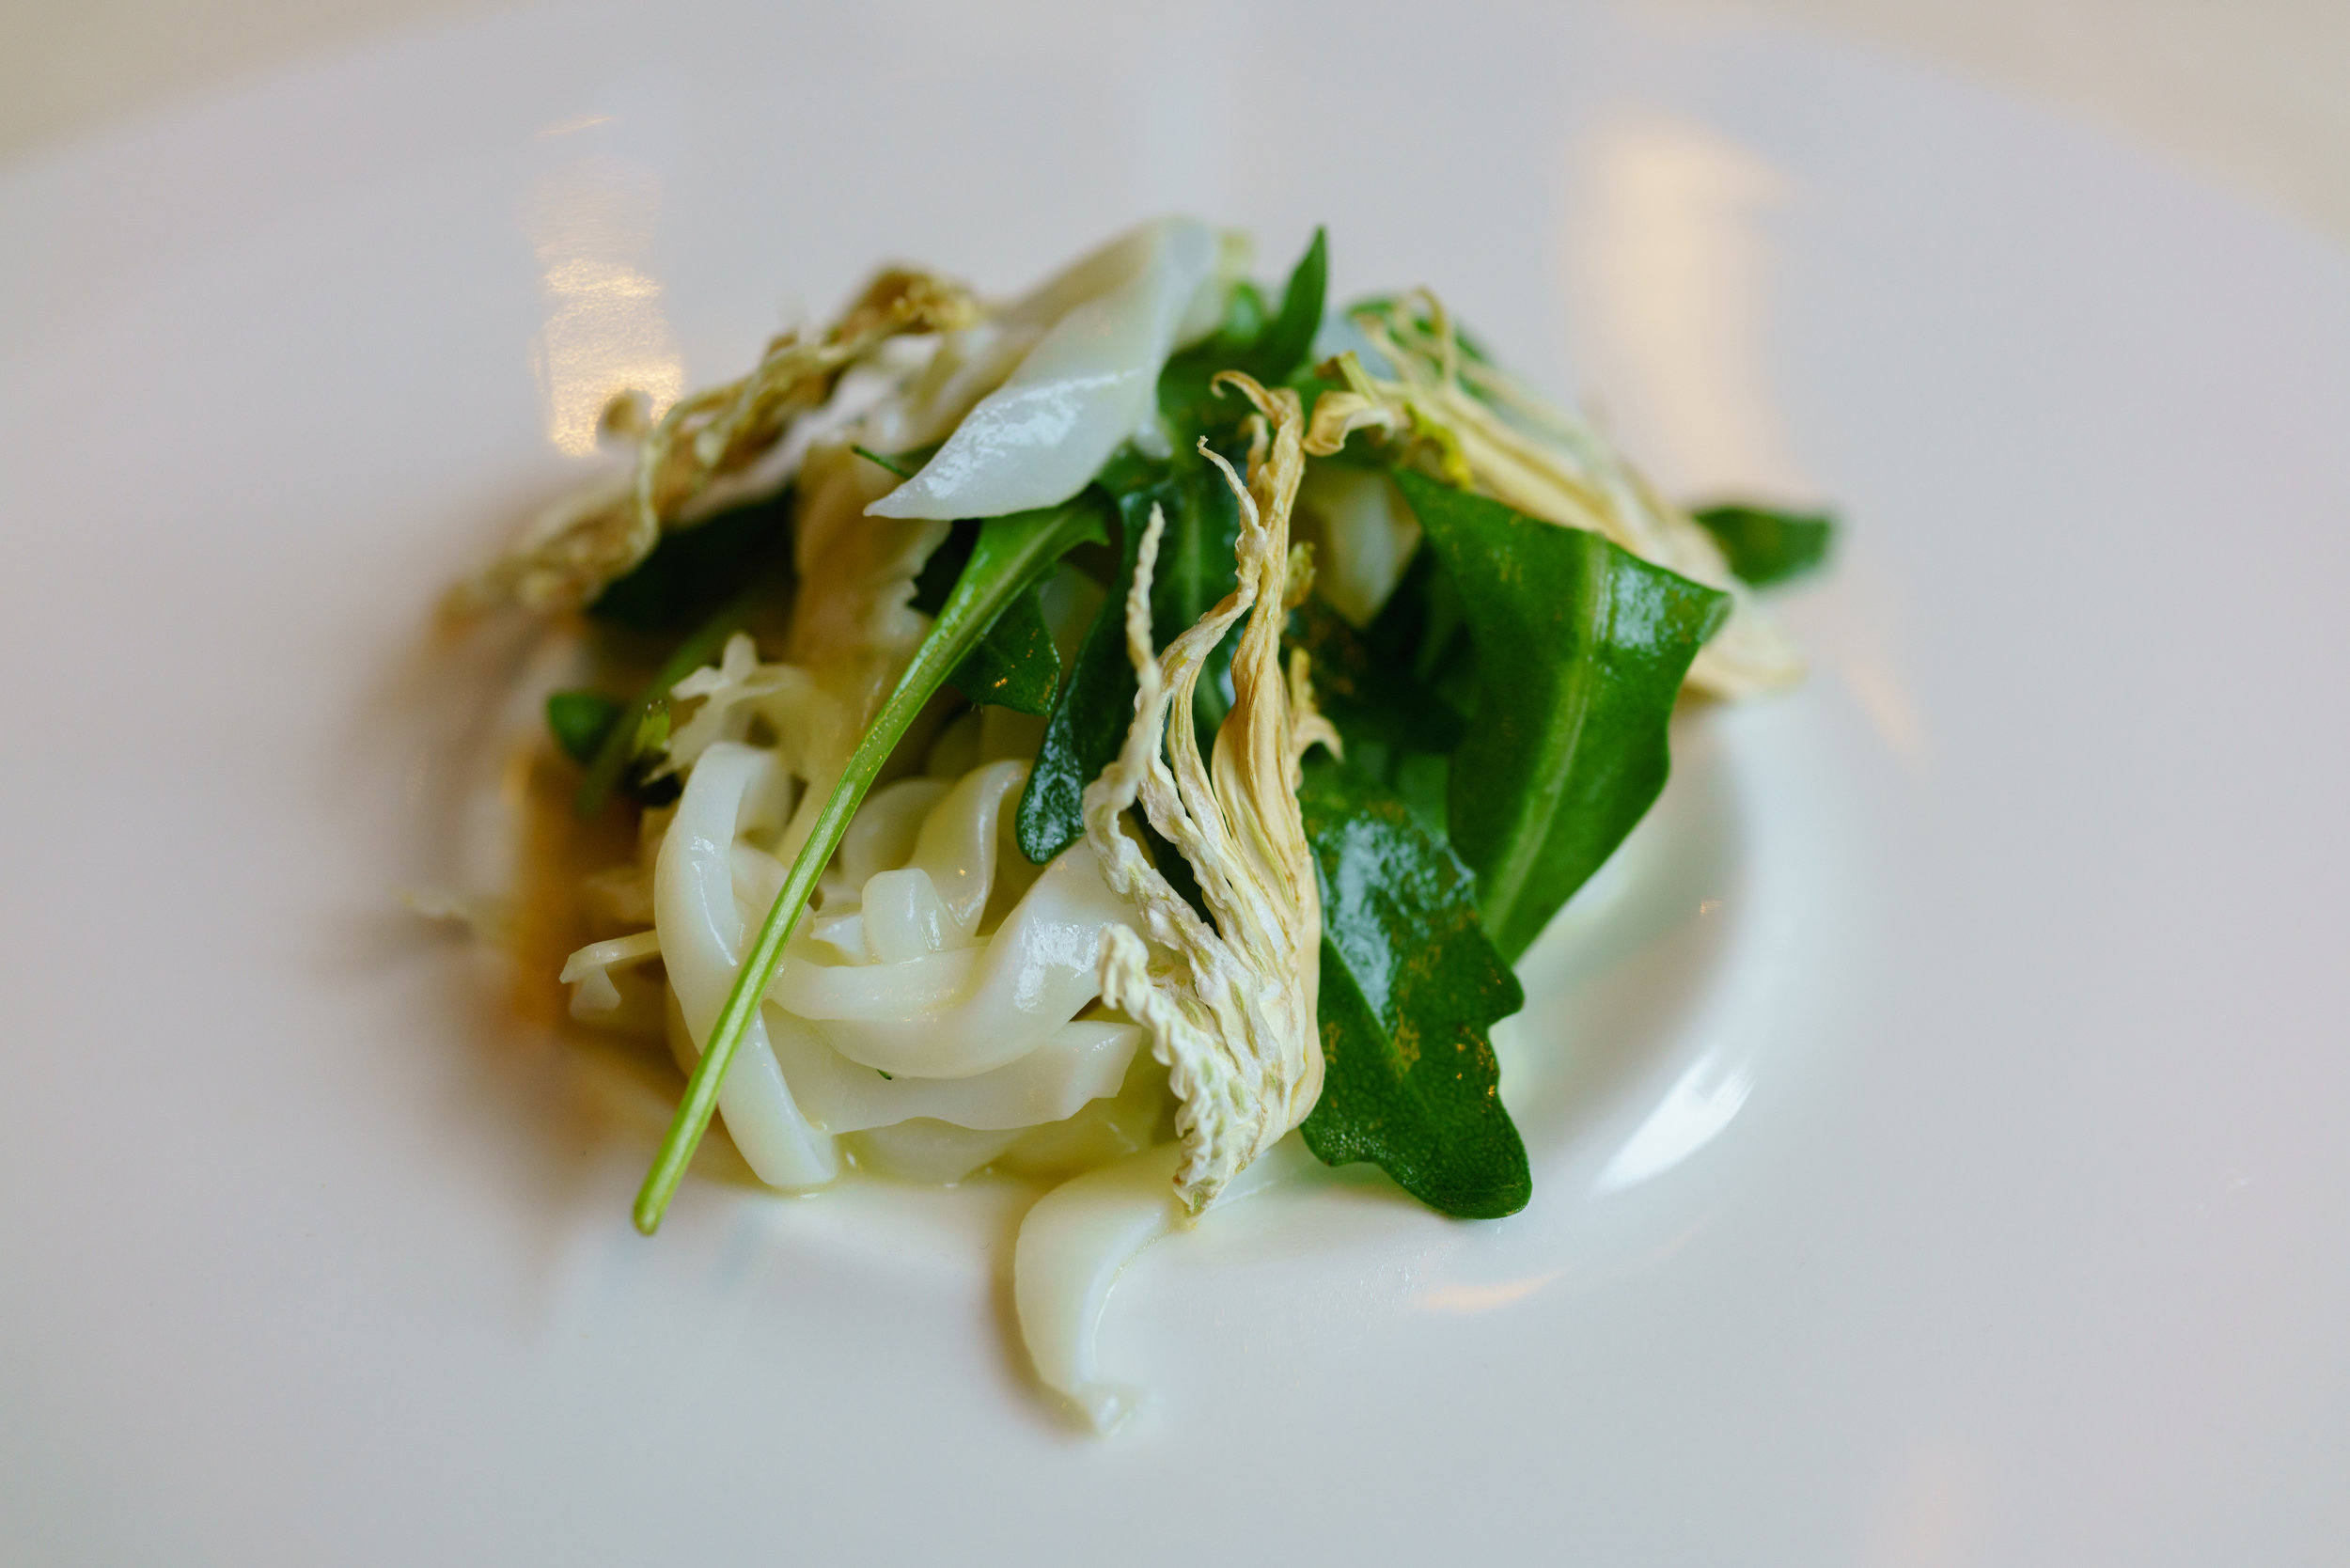 Cuttlefish, fennel, chickpeas, red lentils, rocket leaf, spiked with chili